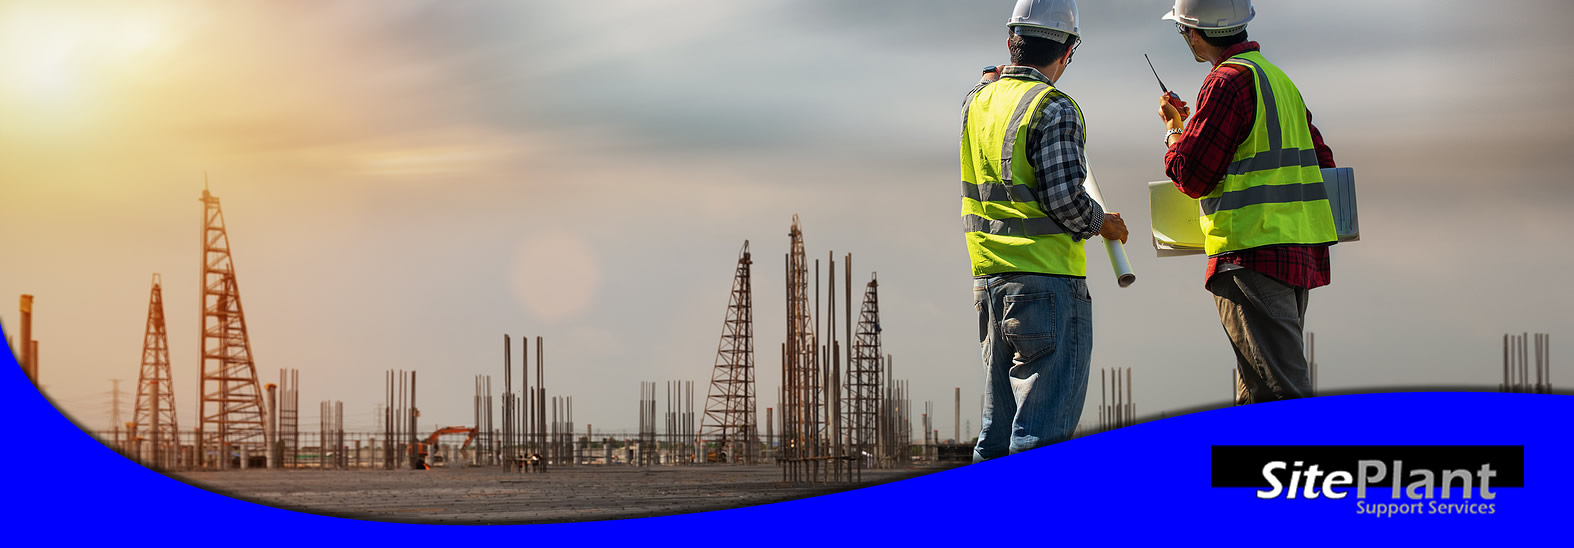 SitePlant is an independent Australian business which is centred around the Concrete Formwork and Scaffolding Industry. We offer a range of unique services to both Contractors and Builders alike